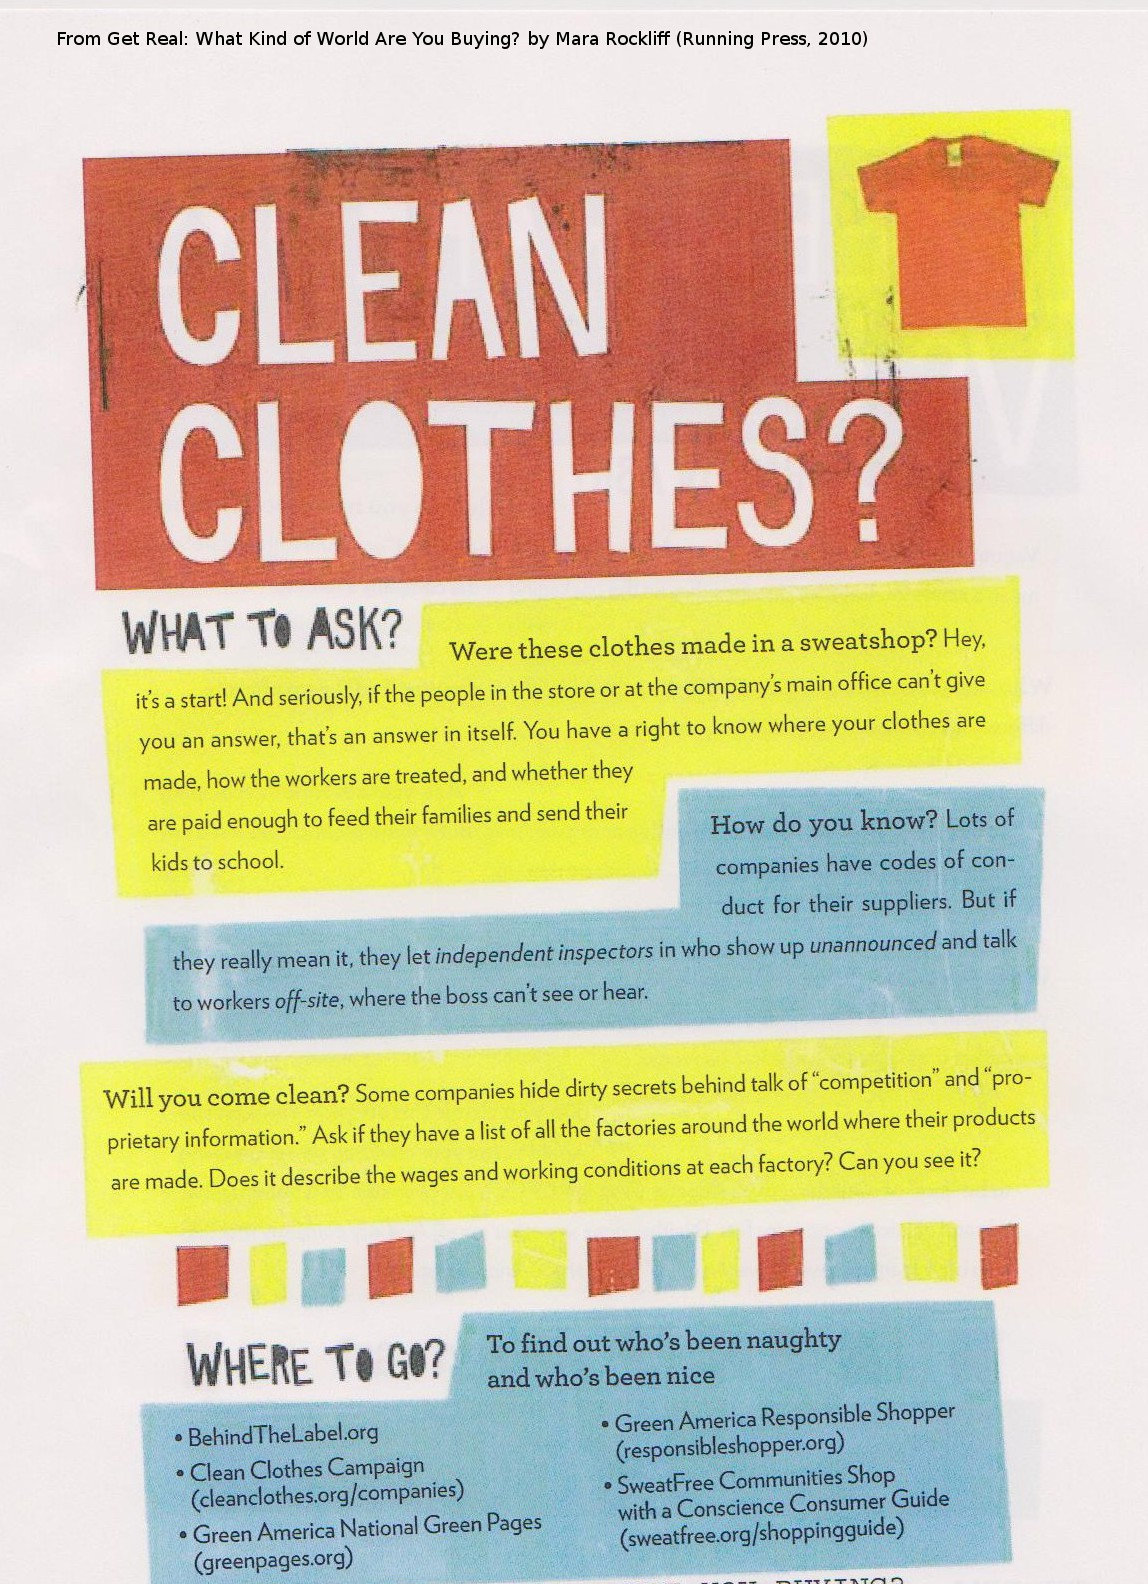 Clean Clothes? What to Ask